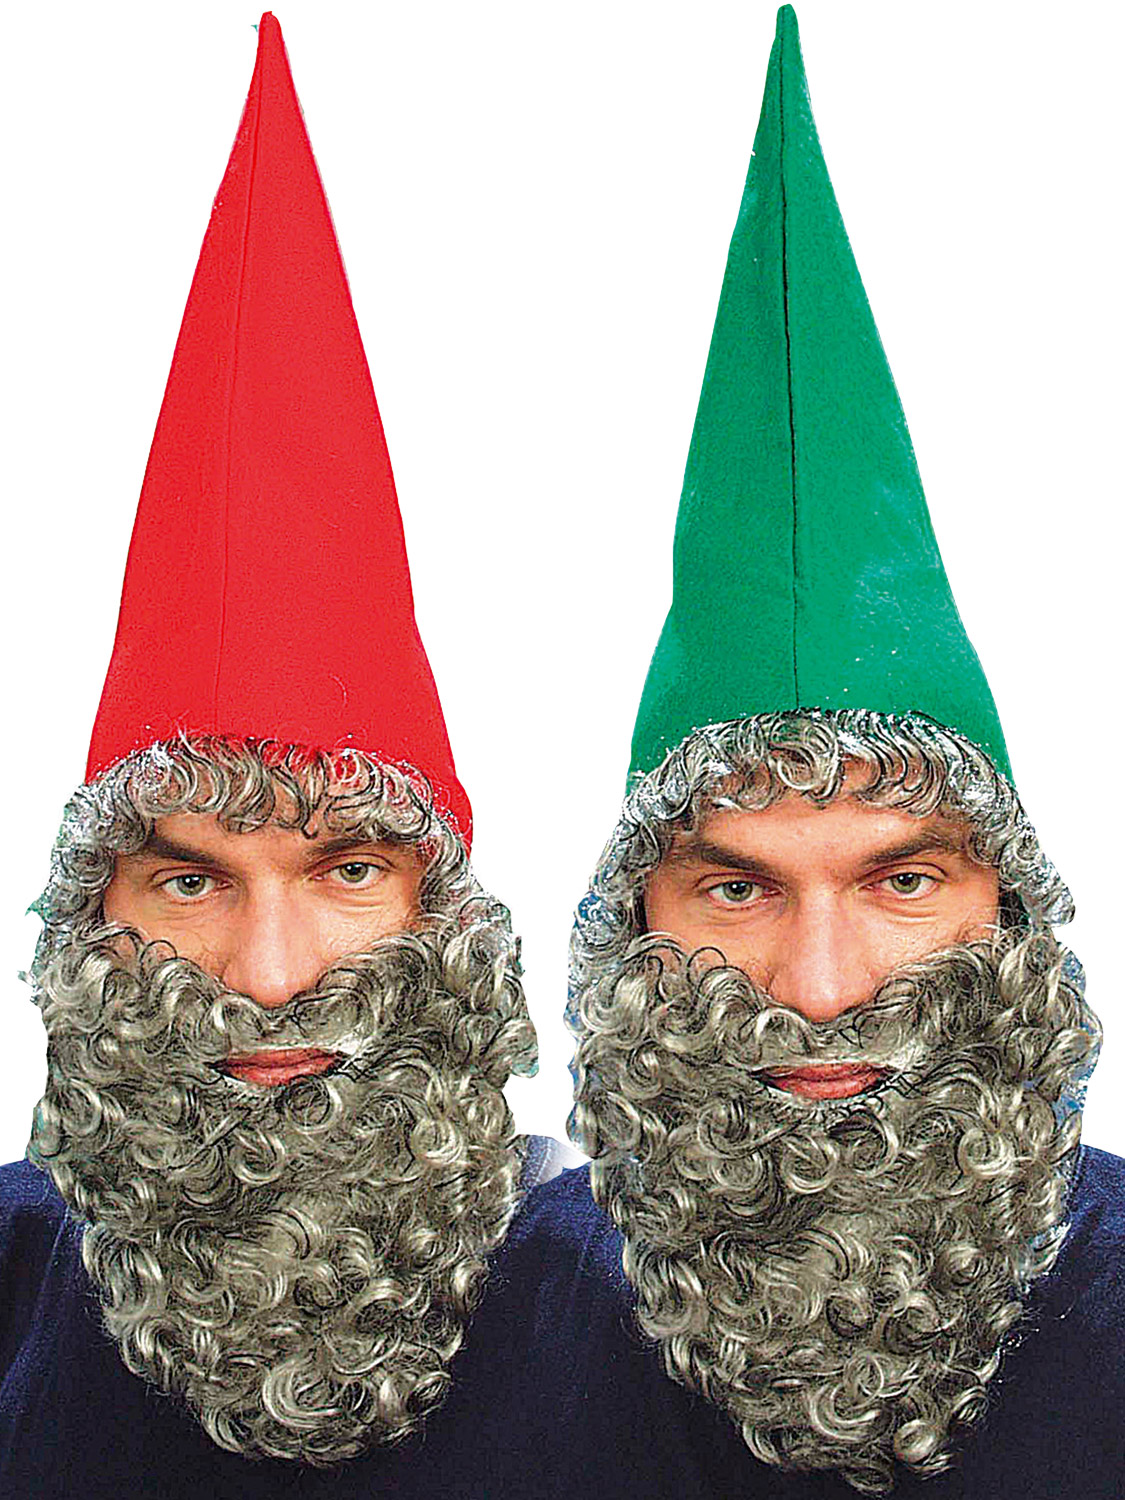 Details about Adults Dwarf Elf Gnome Hat + Beard Mens Ladies Christmas  Fancy Dress Accessory 034cfb113aa0